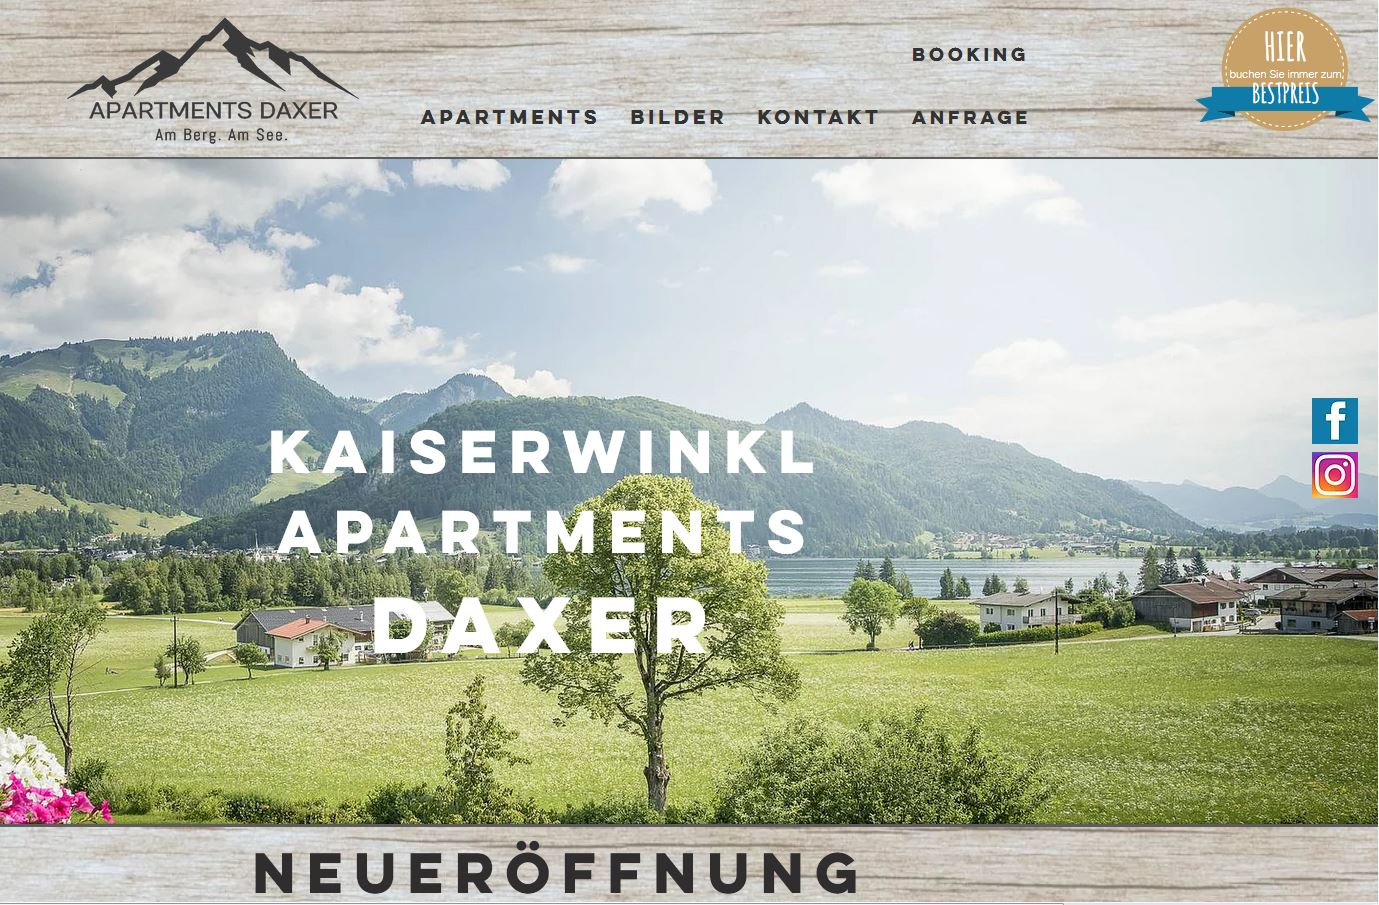 https://www.kaiserwinkl-apartments-daxer.at